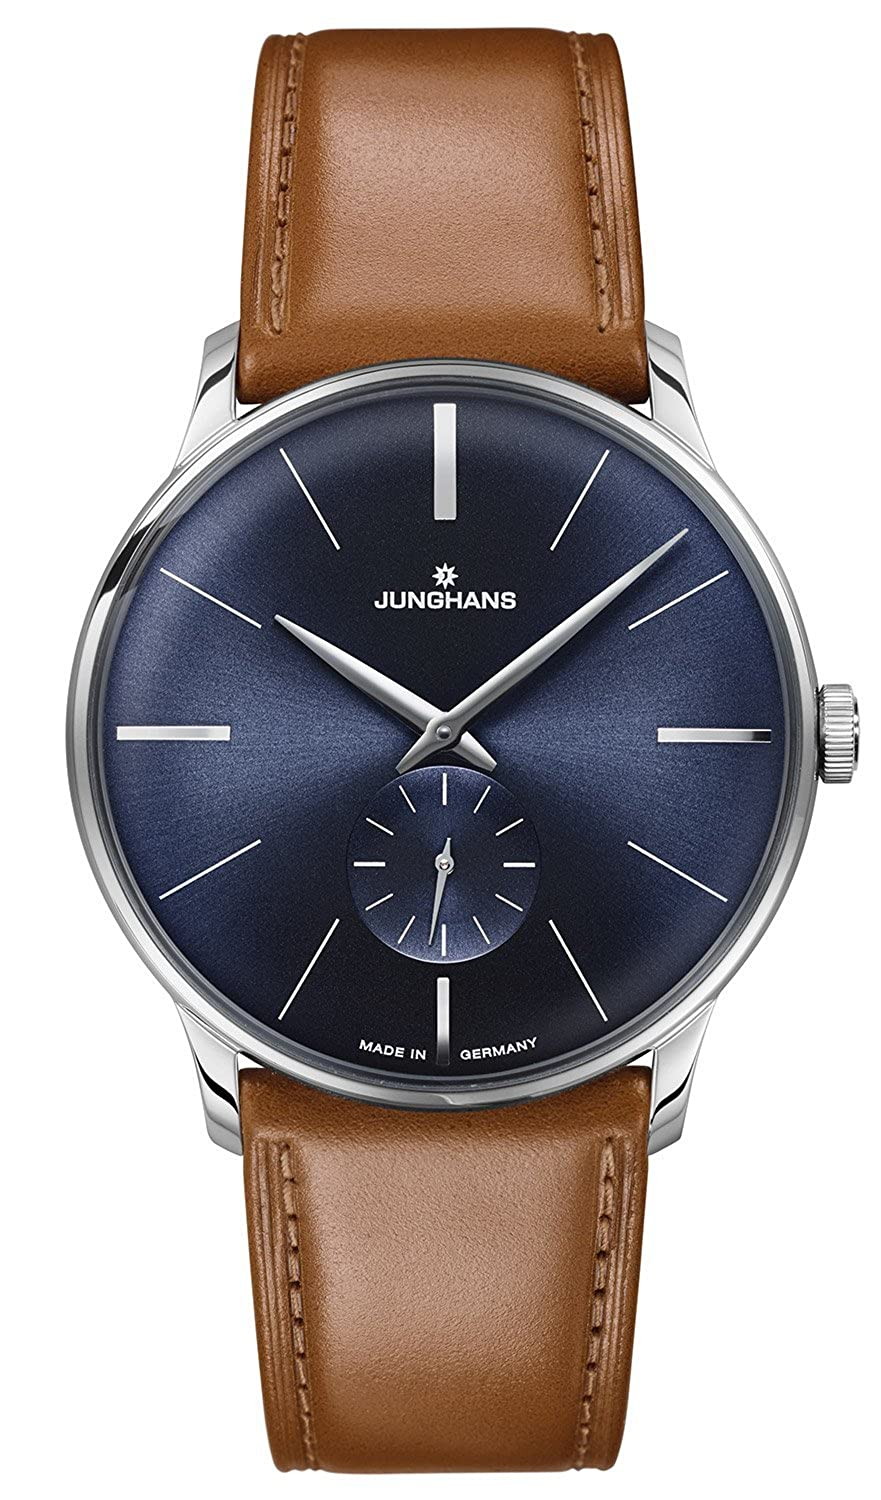 Junghans Meister Sunray Blue Dial Hand Woundブラウンレザーストラップ027 / 3504 B0119PUIEW